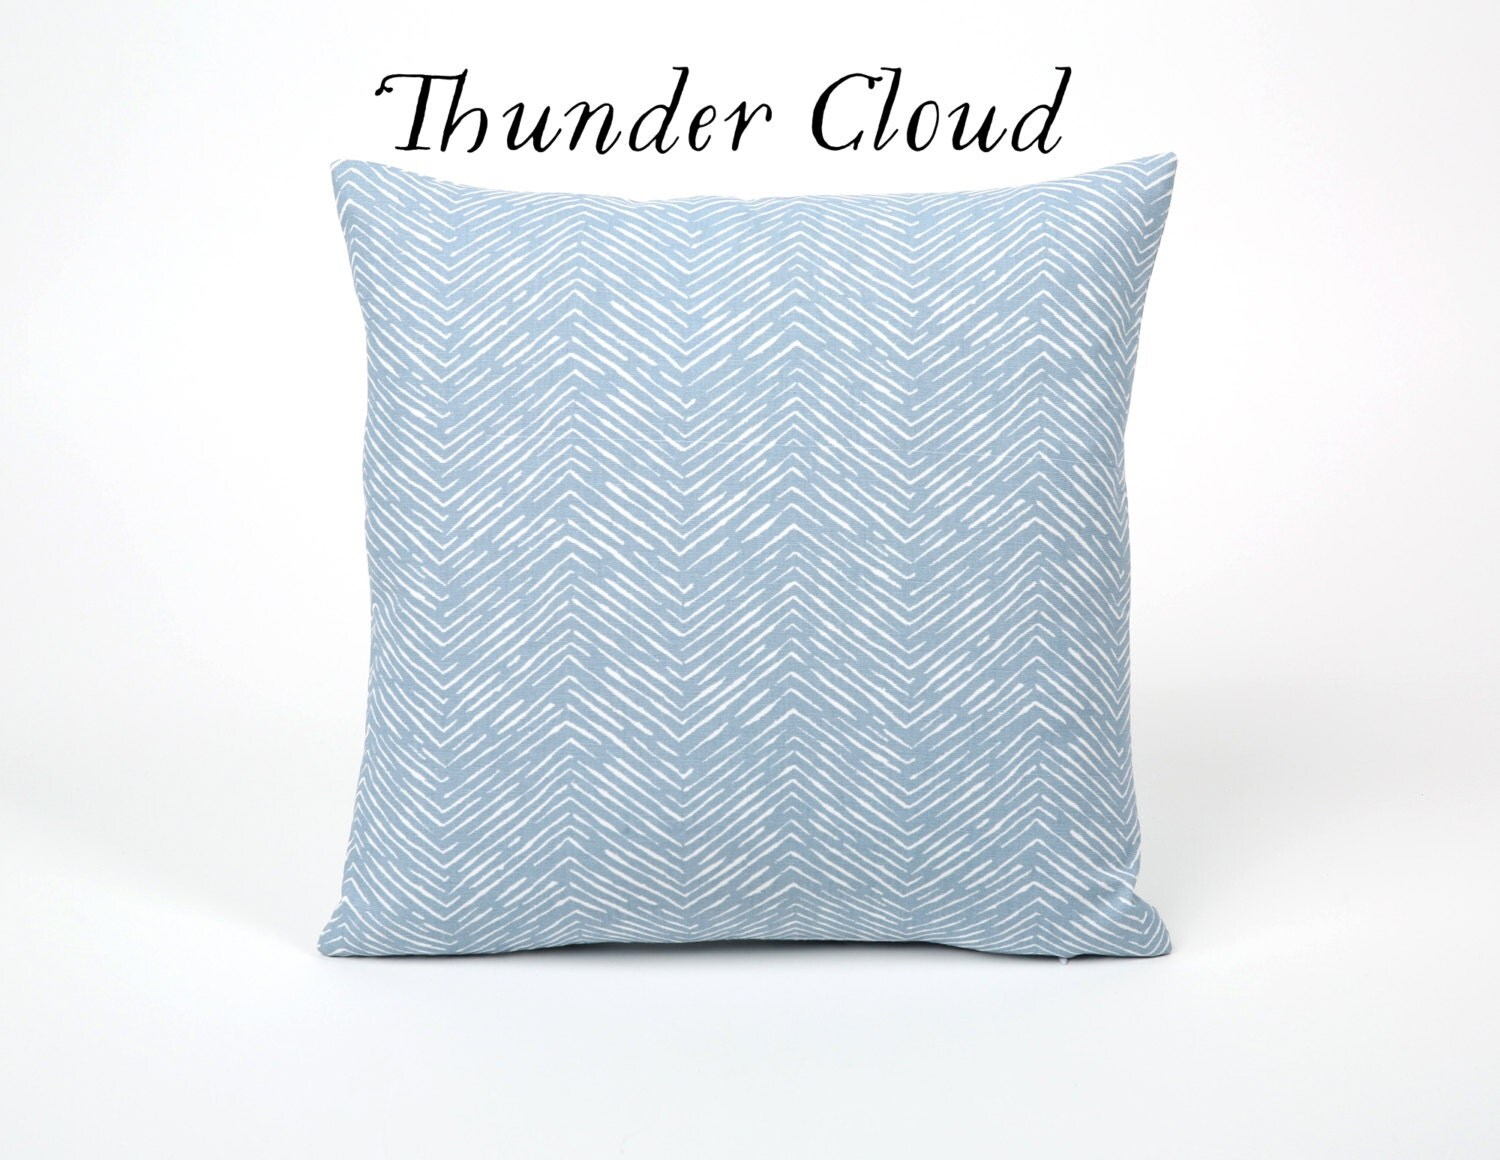 Light Blue Throw Pillow Covers : Light Blue Decorative Throw Pillow Cover 18x18 20x20 24x24